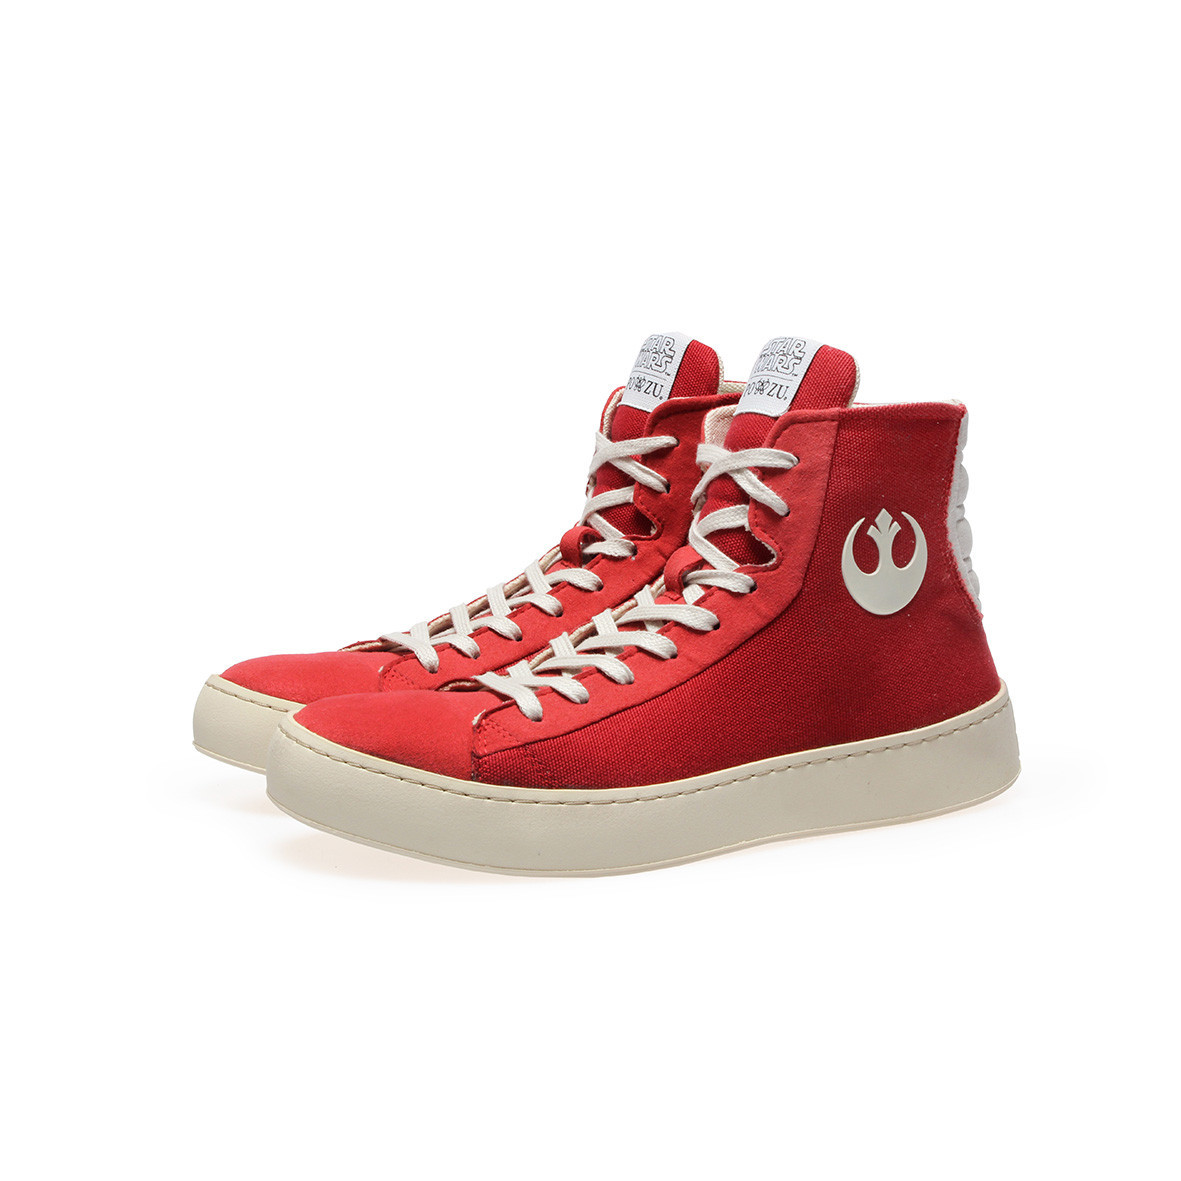 Po-Zu x Star Wars women's The Force Awakens Resistance sneakers (red version)